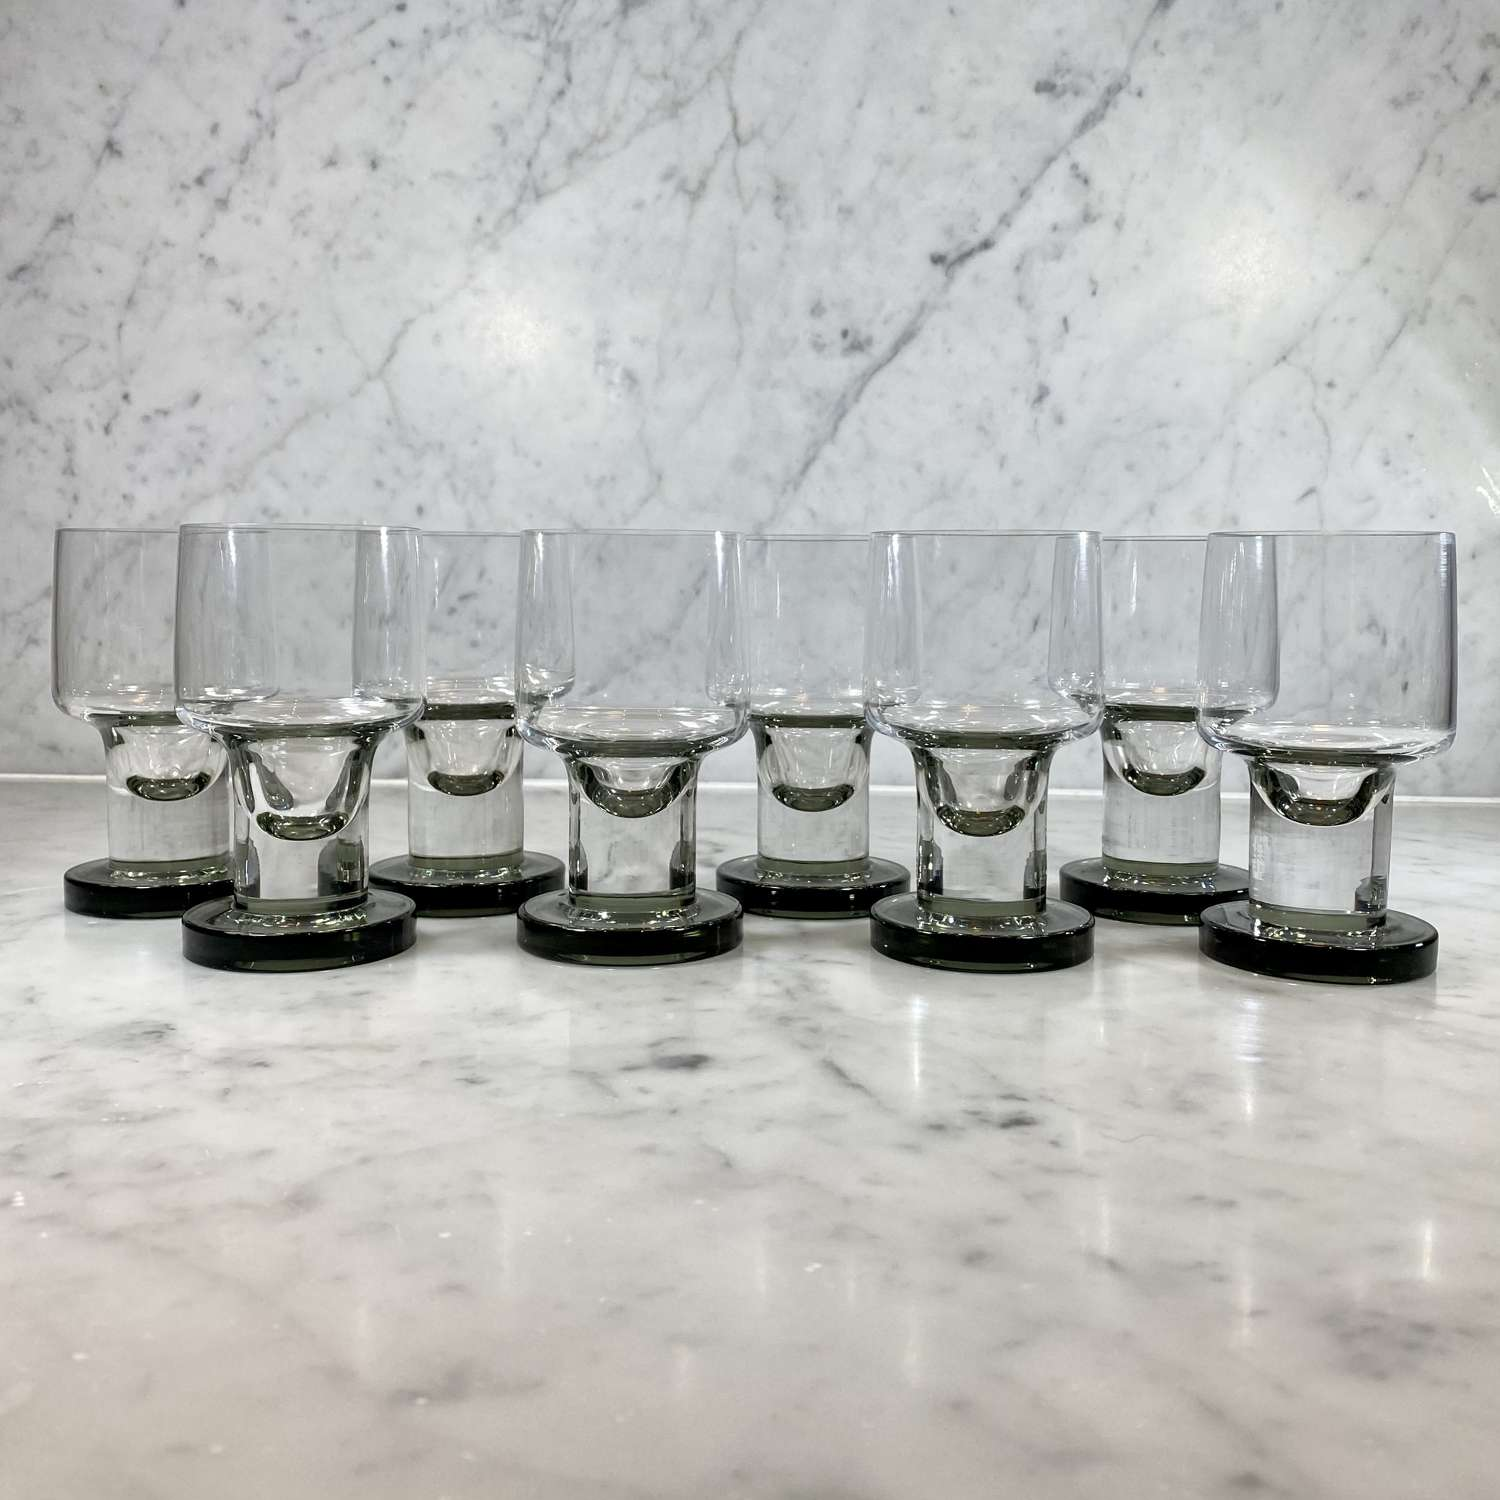 Superb set of Mid Cent French crystal wine glasses